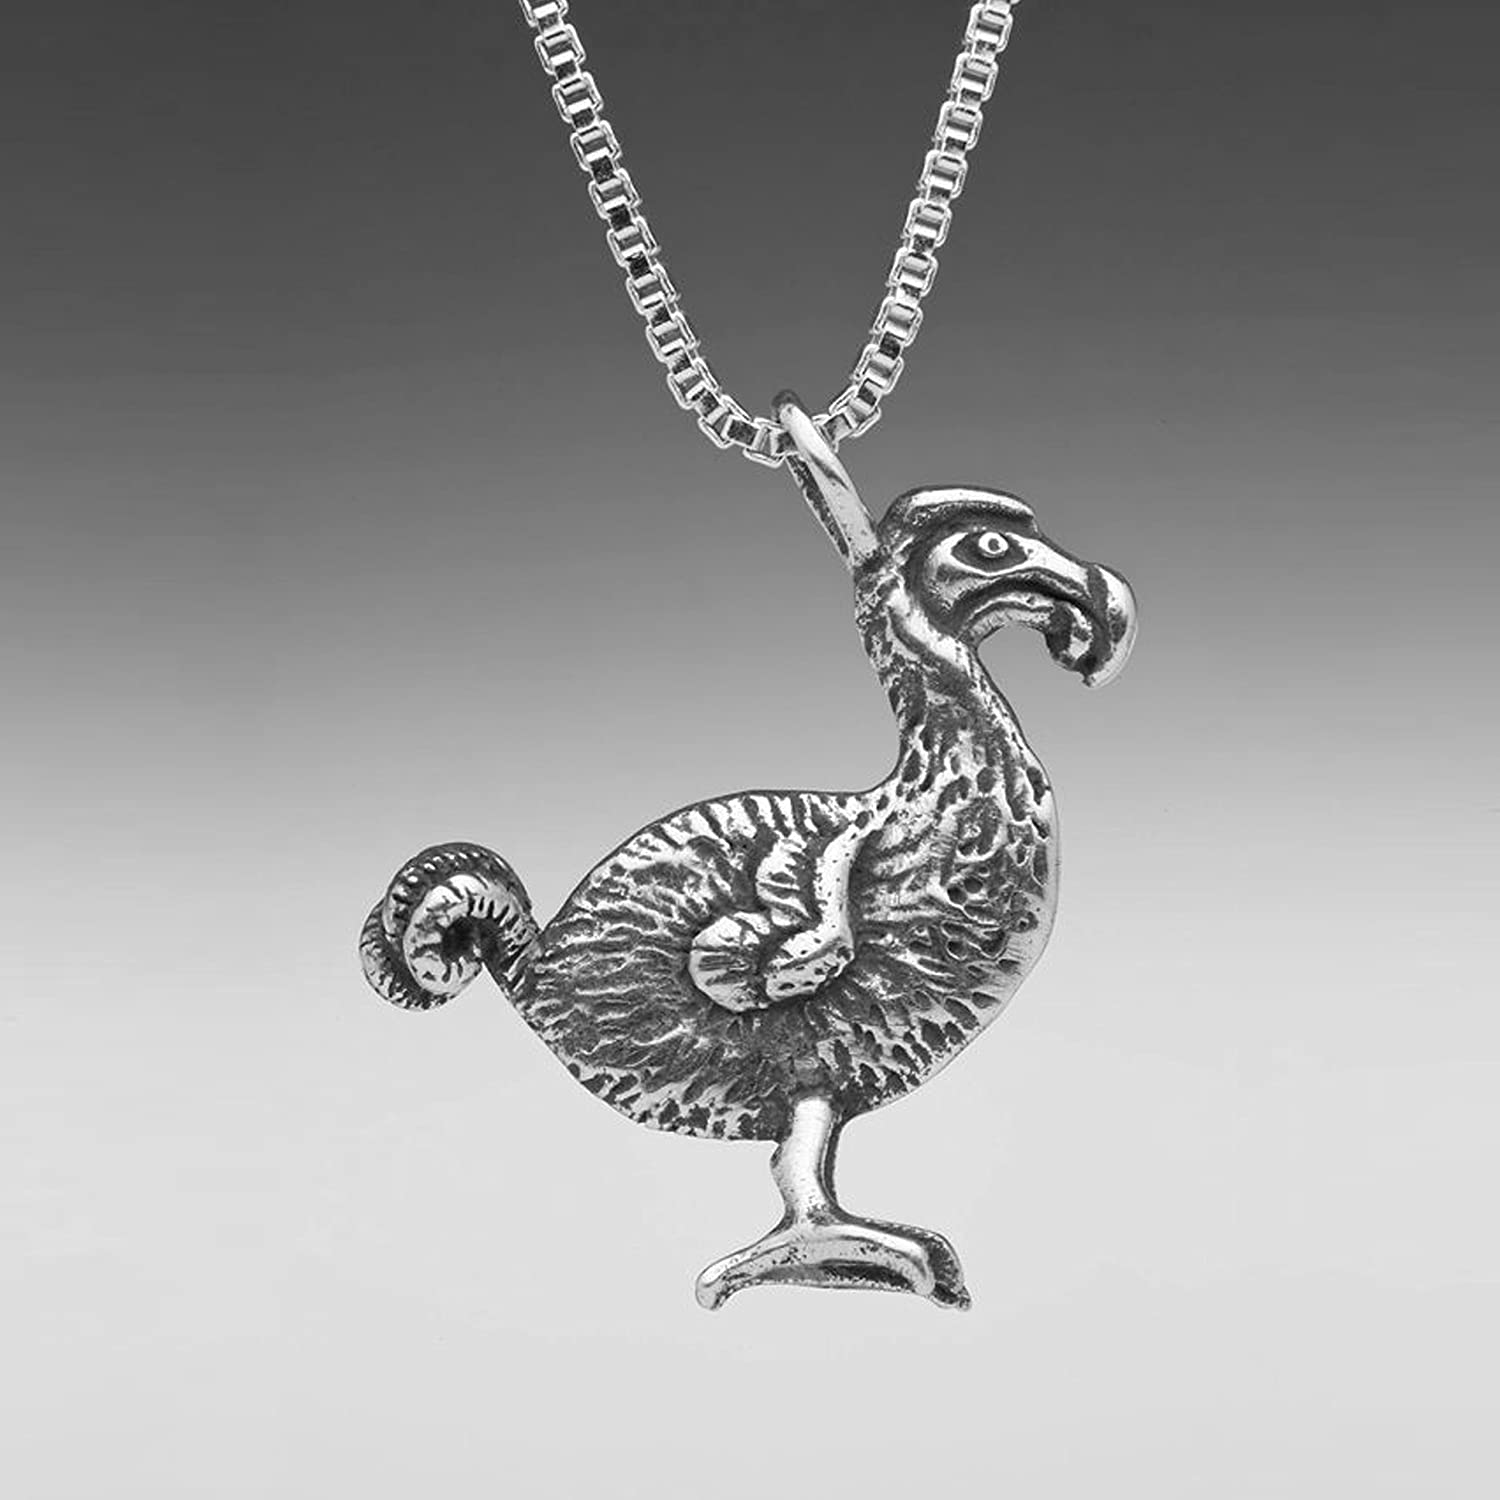 free sterling silver bird today jewelry fire product rising cgc shipping phoenix overstock watches necklace